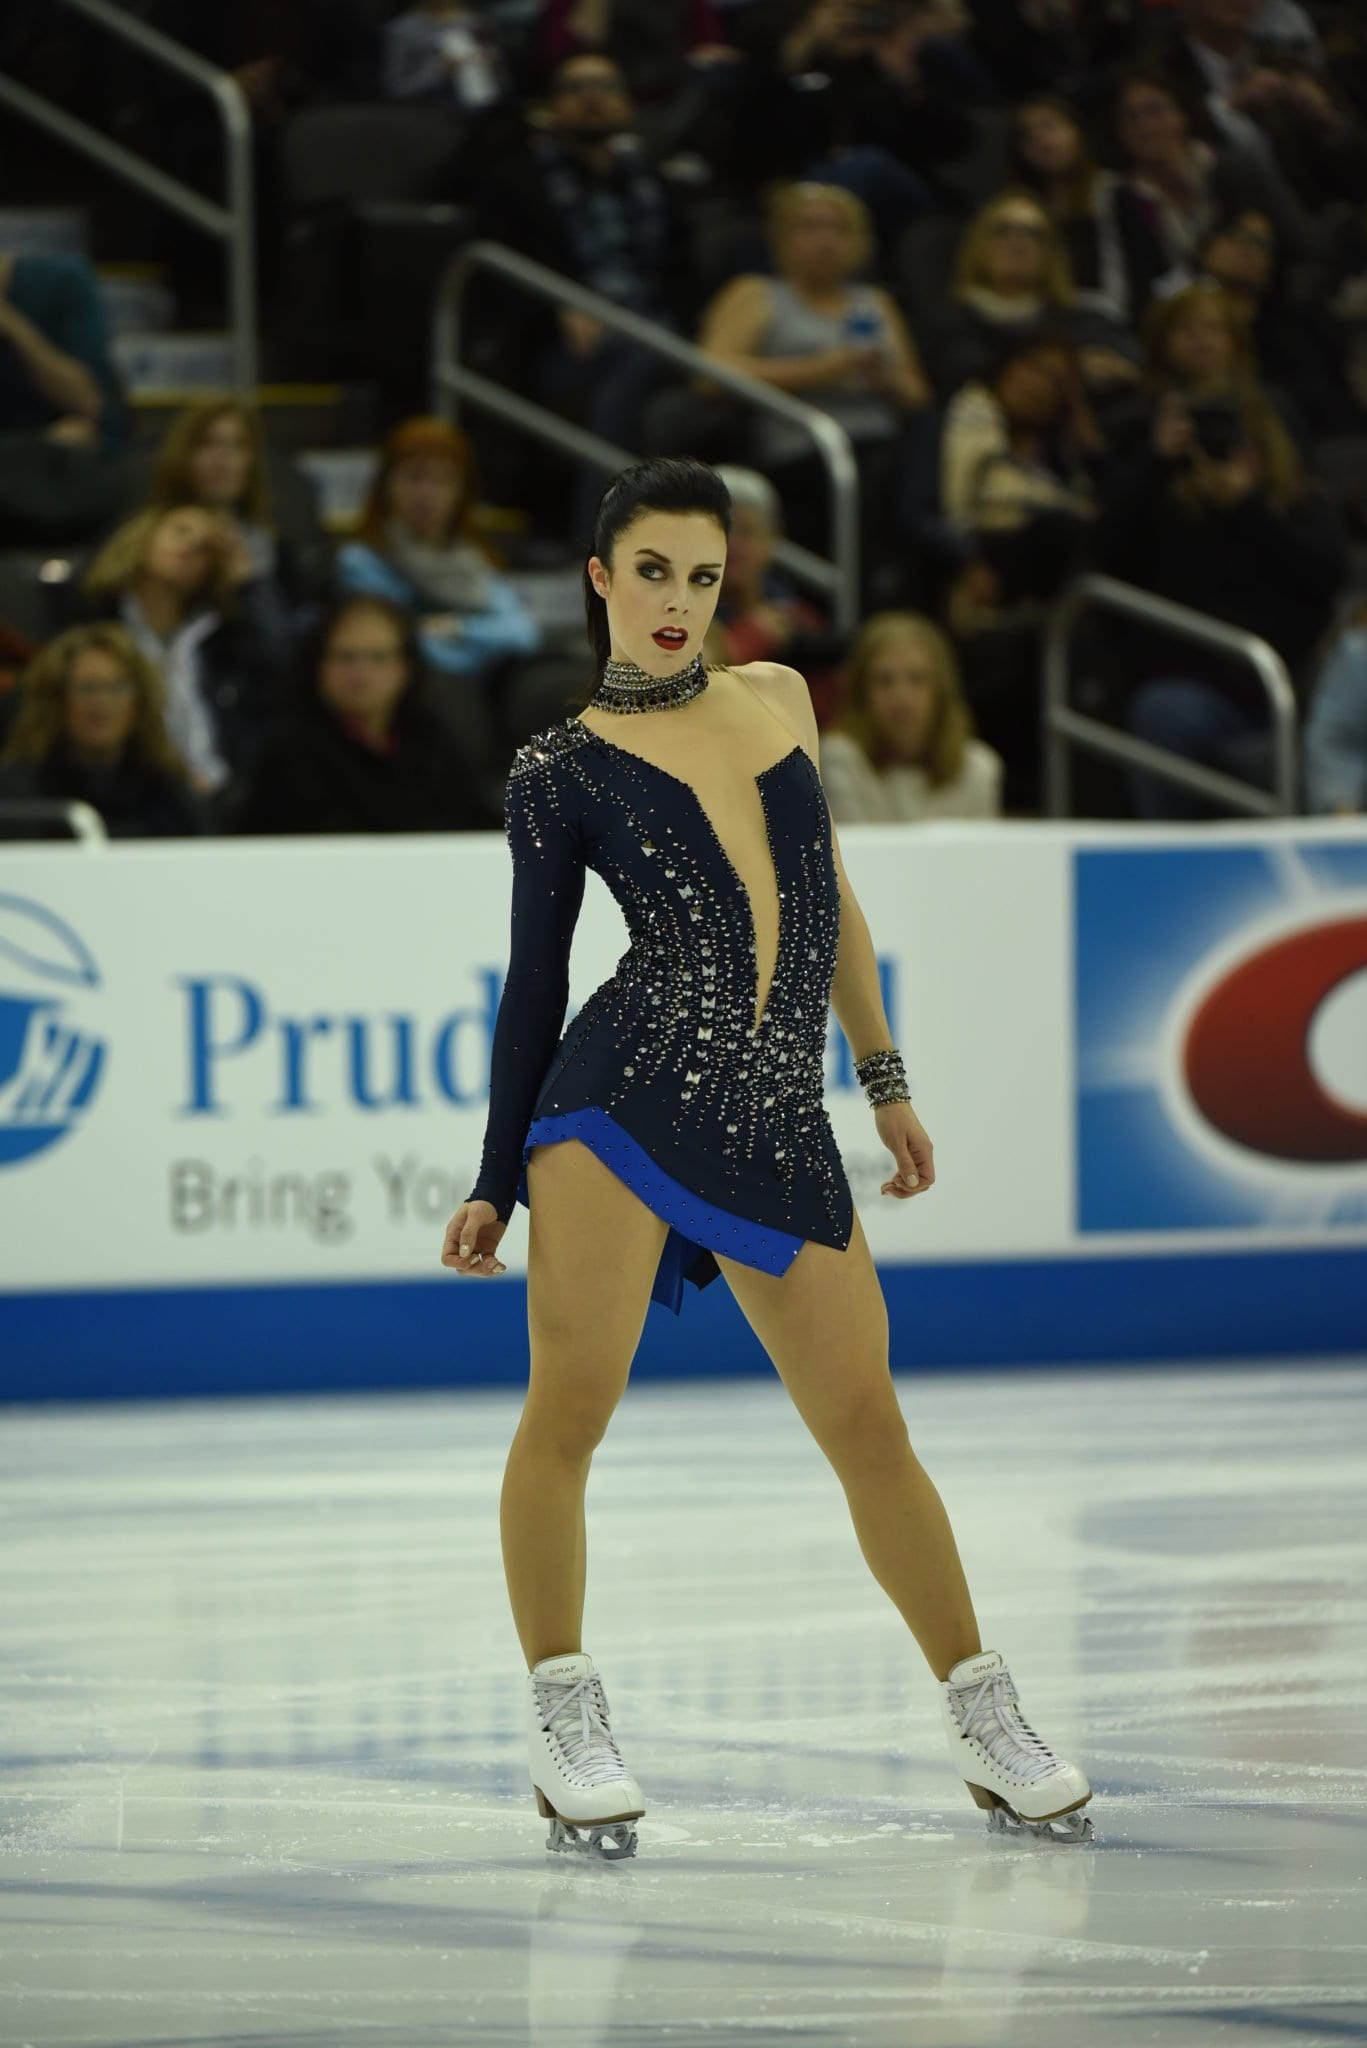 Northern Virginia native Ashley Wagner is aiming for another podium finish at the 2017 World Figure Skating Championships in Helsinki, Finland. (Photo: Jay Adeff/USFS)